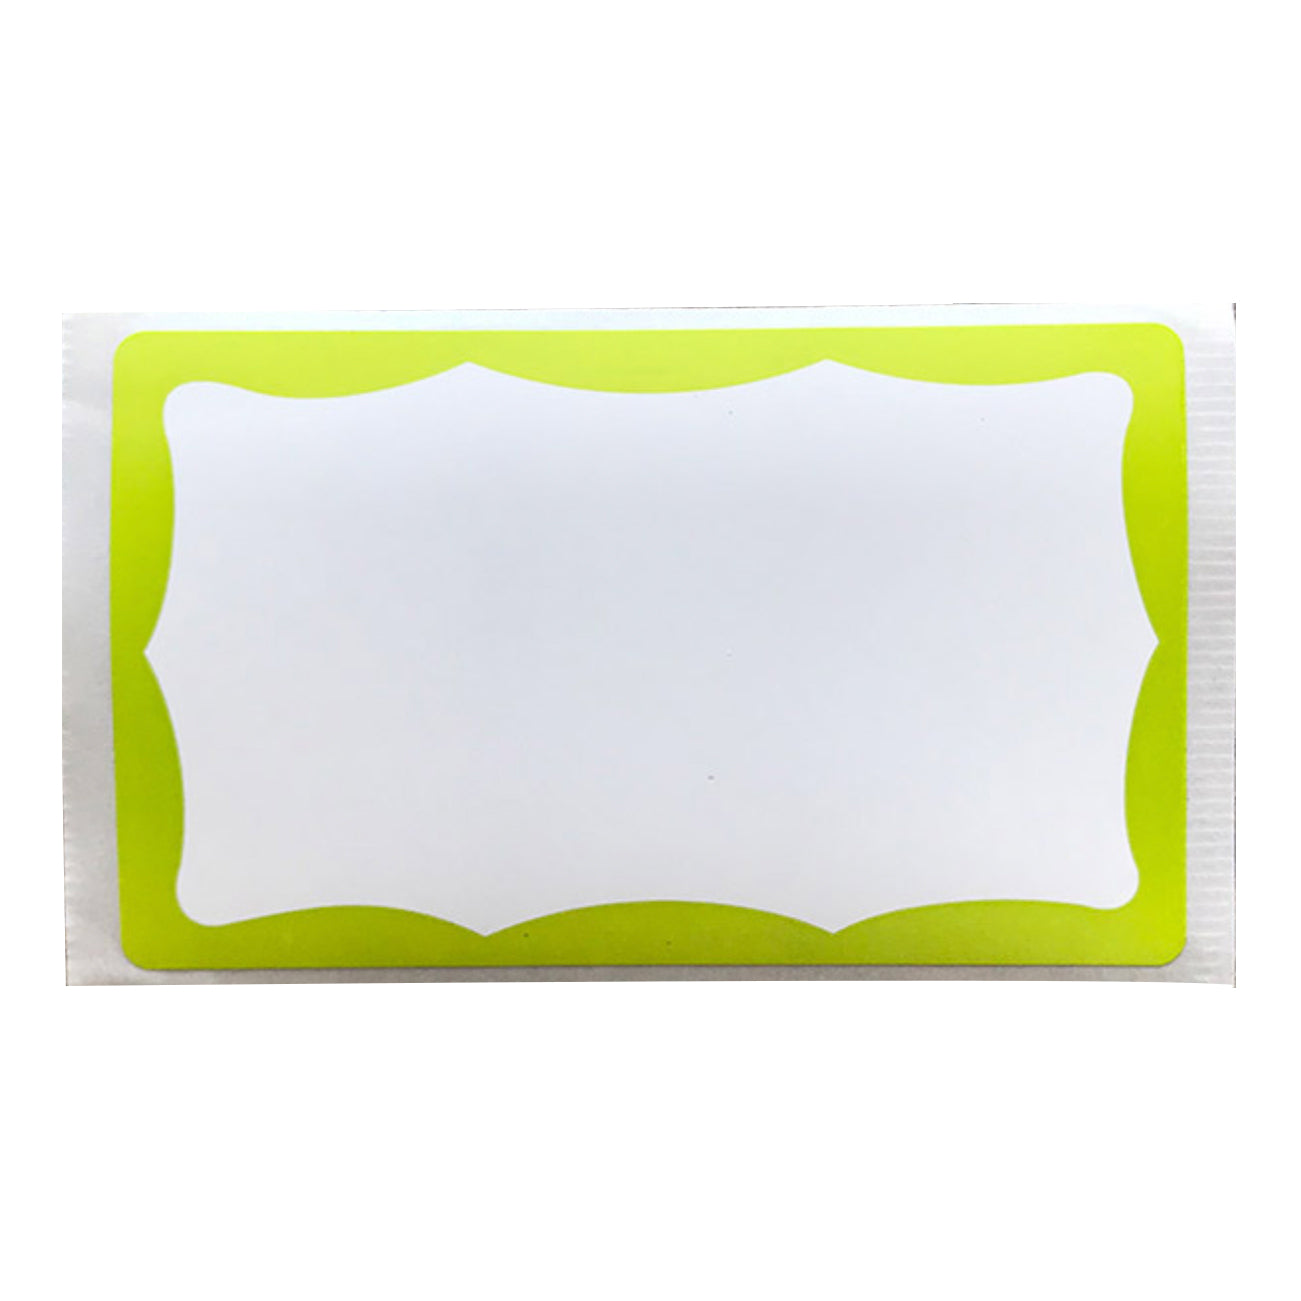 Eggshell Sticker Pack 50pcs - Lime